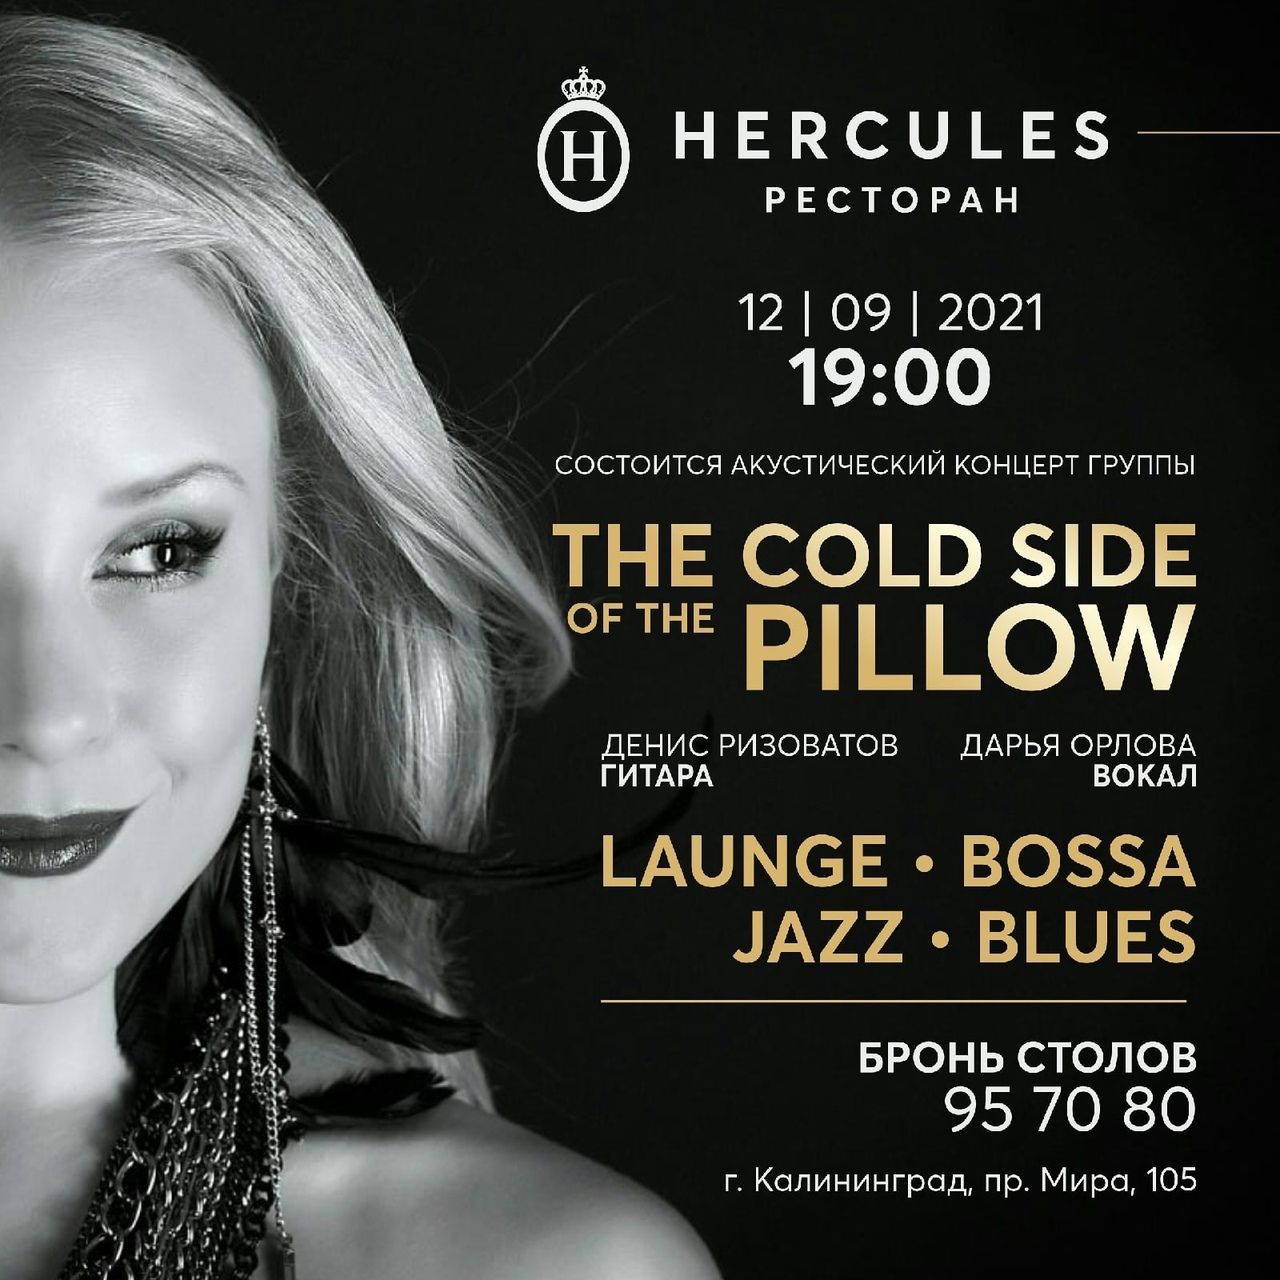 12.09 The Cold Side of the Plillow в ресторане Геркулес!